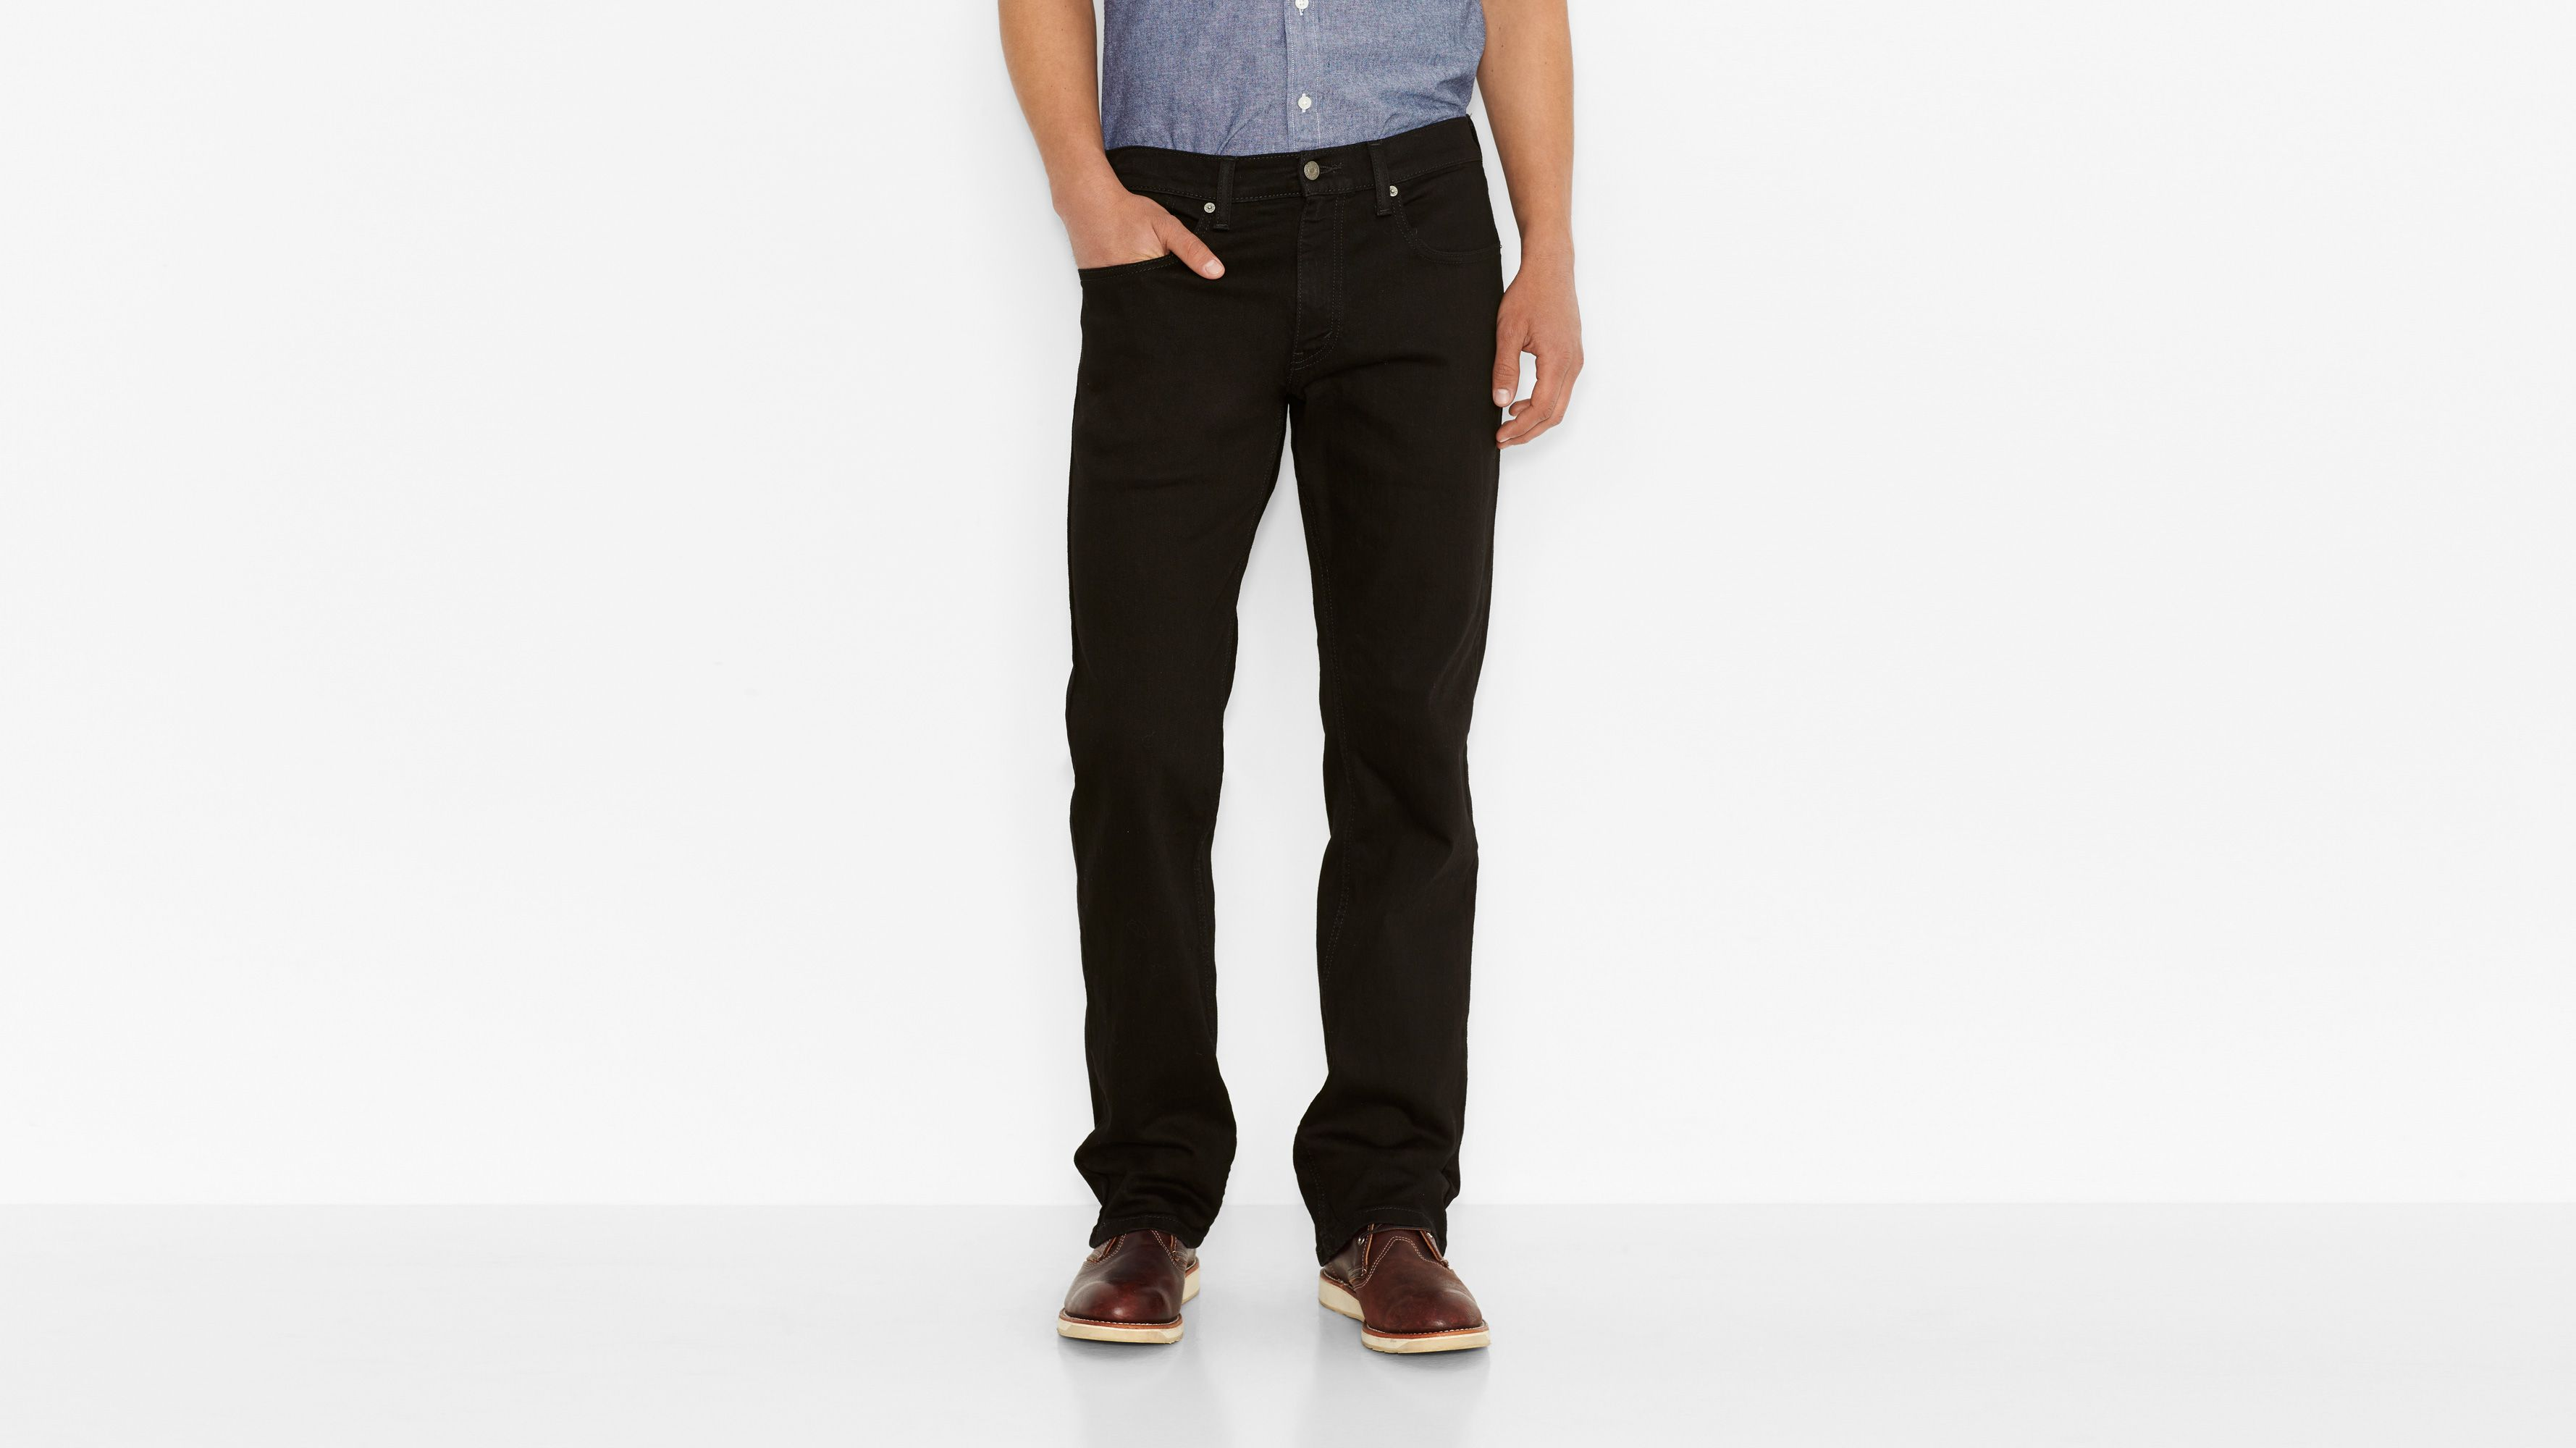 559™ Relaxed Straight Jeans - Black